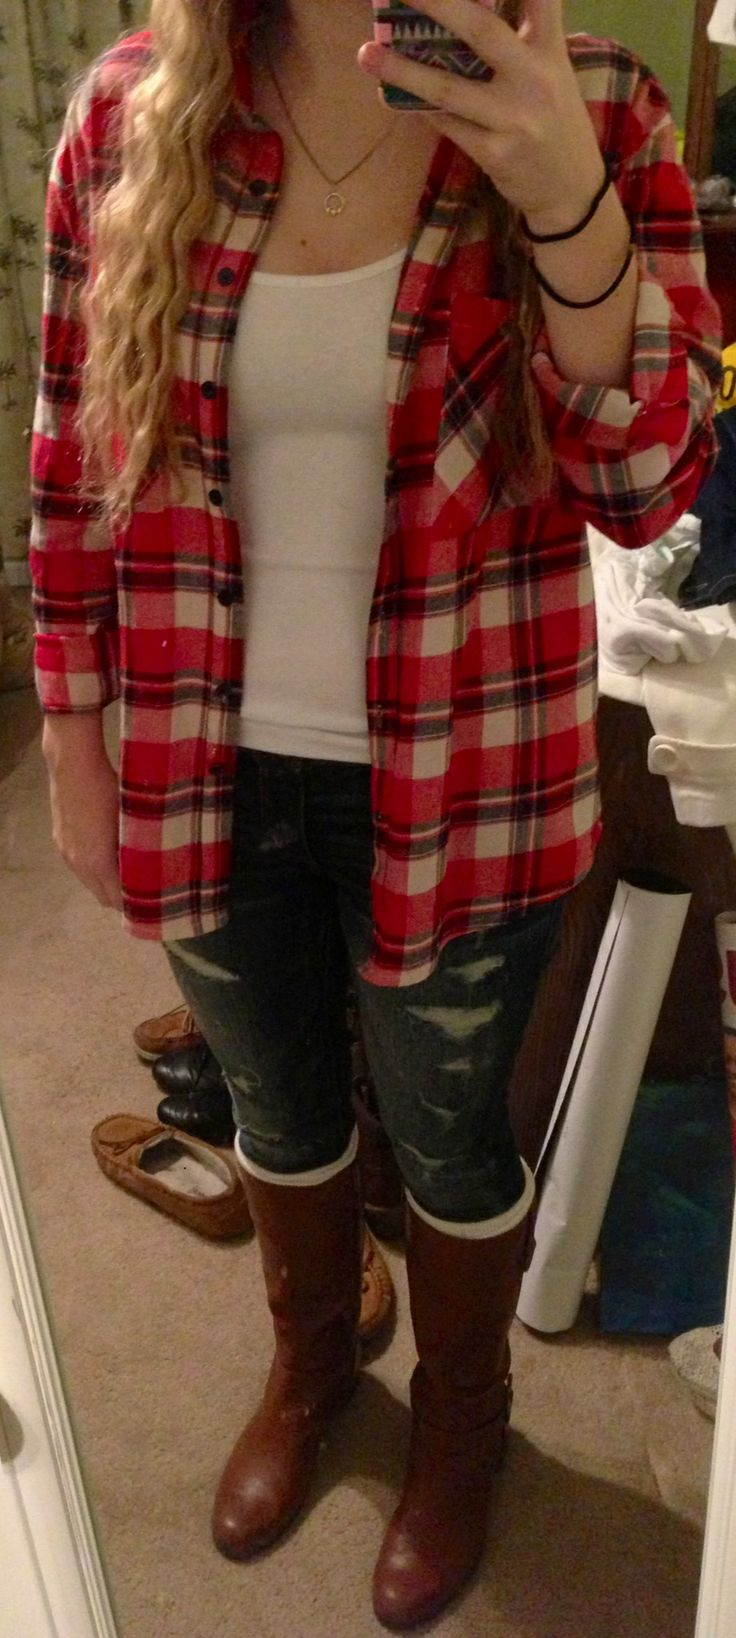 Flannel wear! #red #flannel #shirt #rippedjeans #legwarmers #brown #boots #winter #clothes #fashion